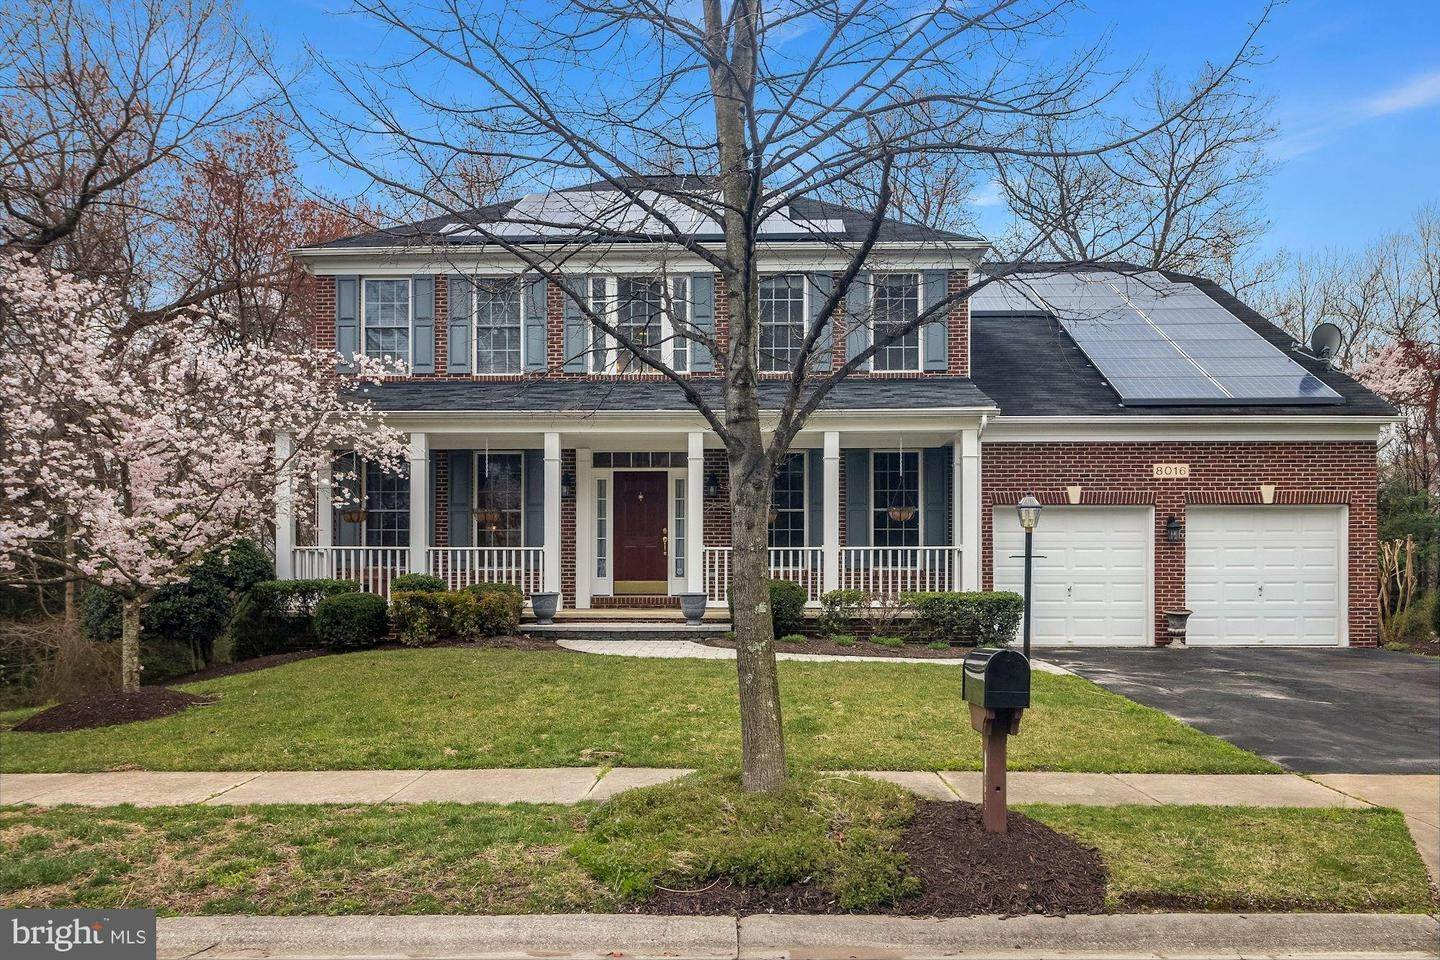 2. Single Family Homes à Millersville, Maryland, 21108 États-Unis